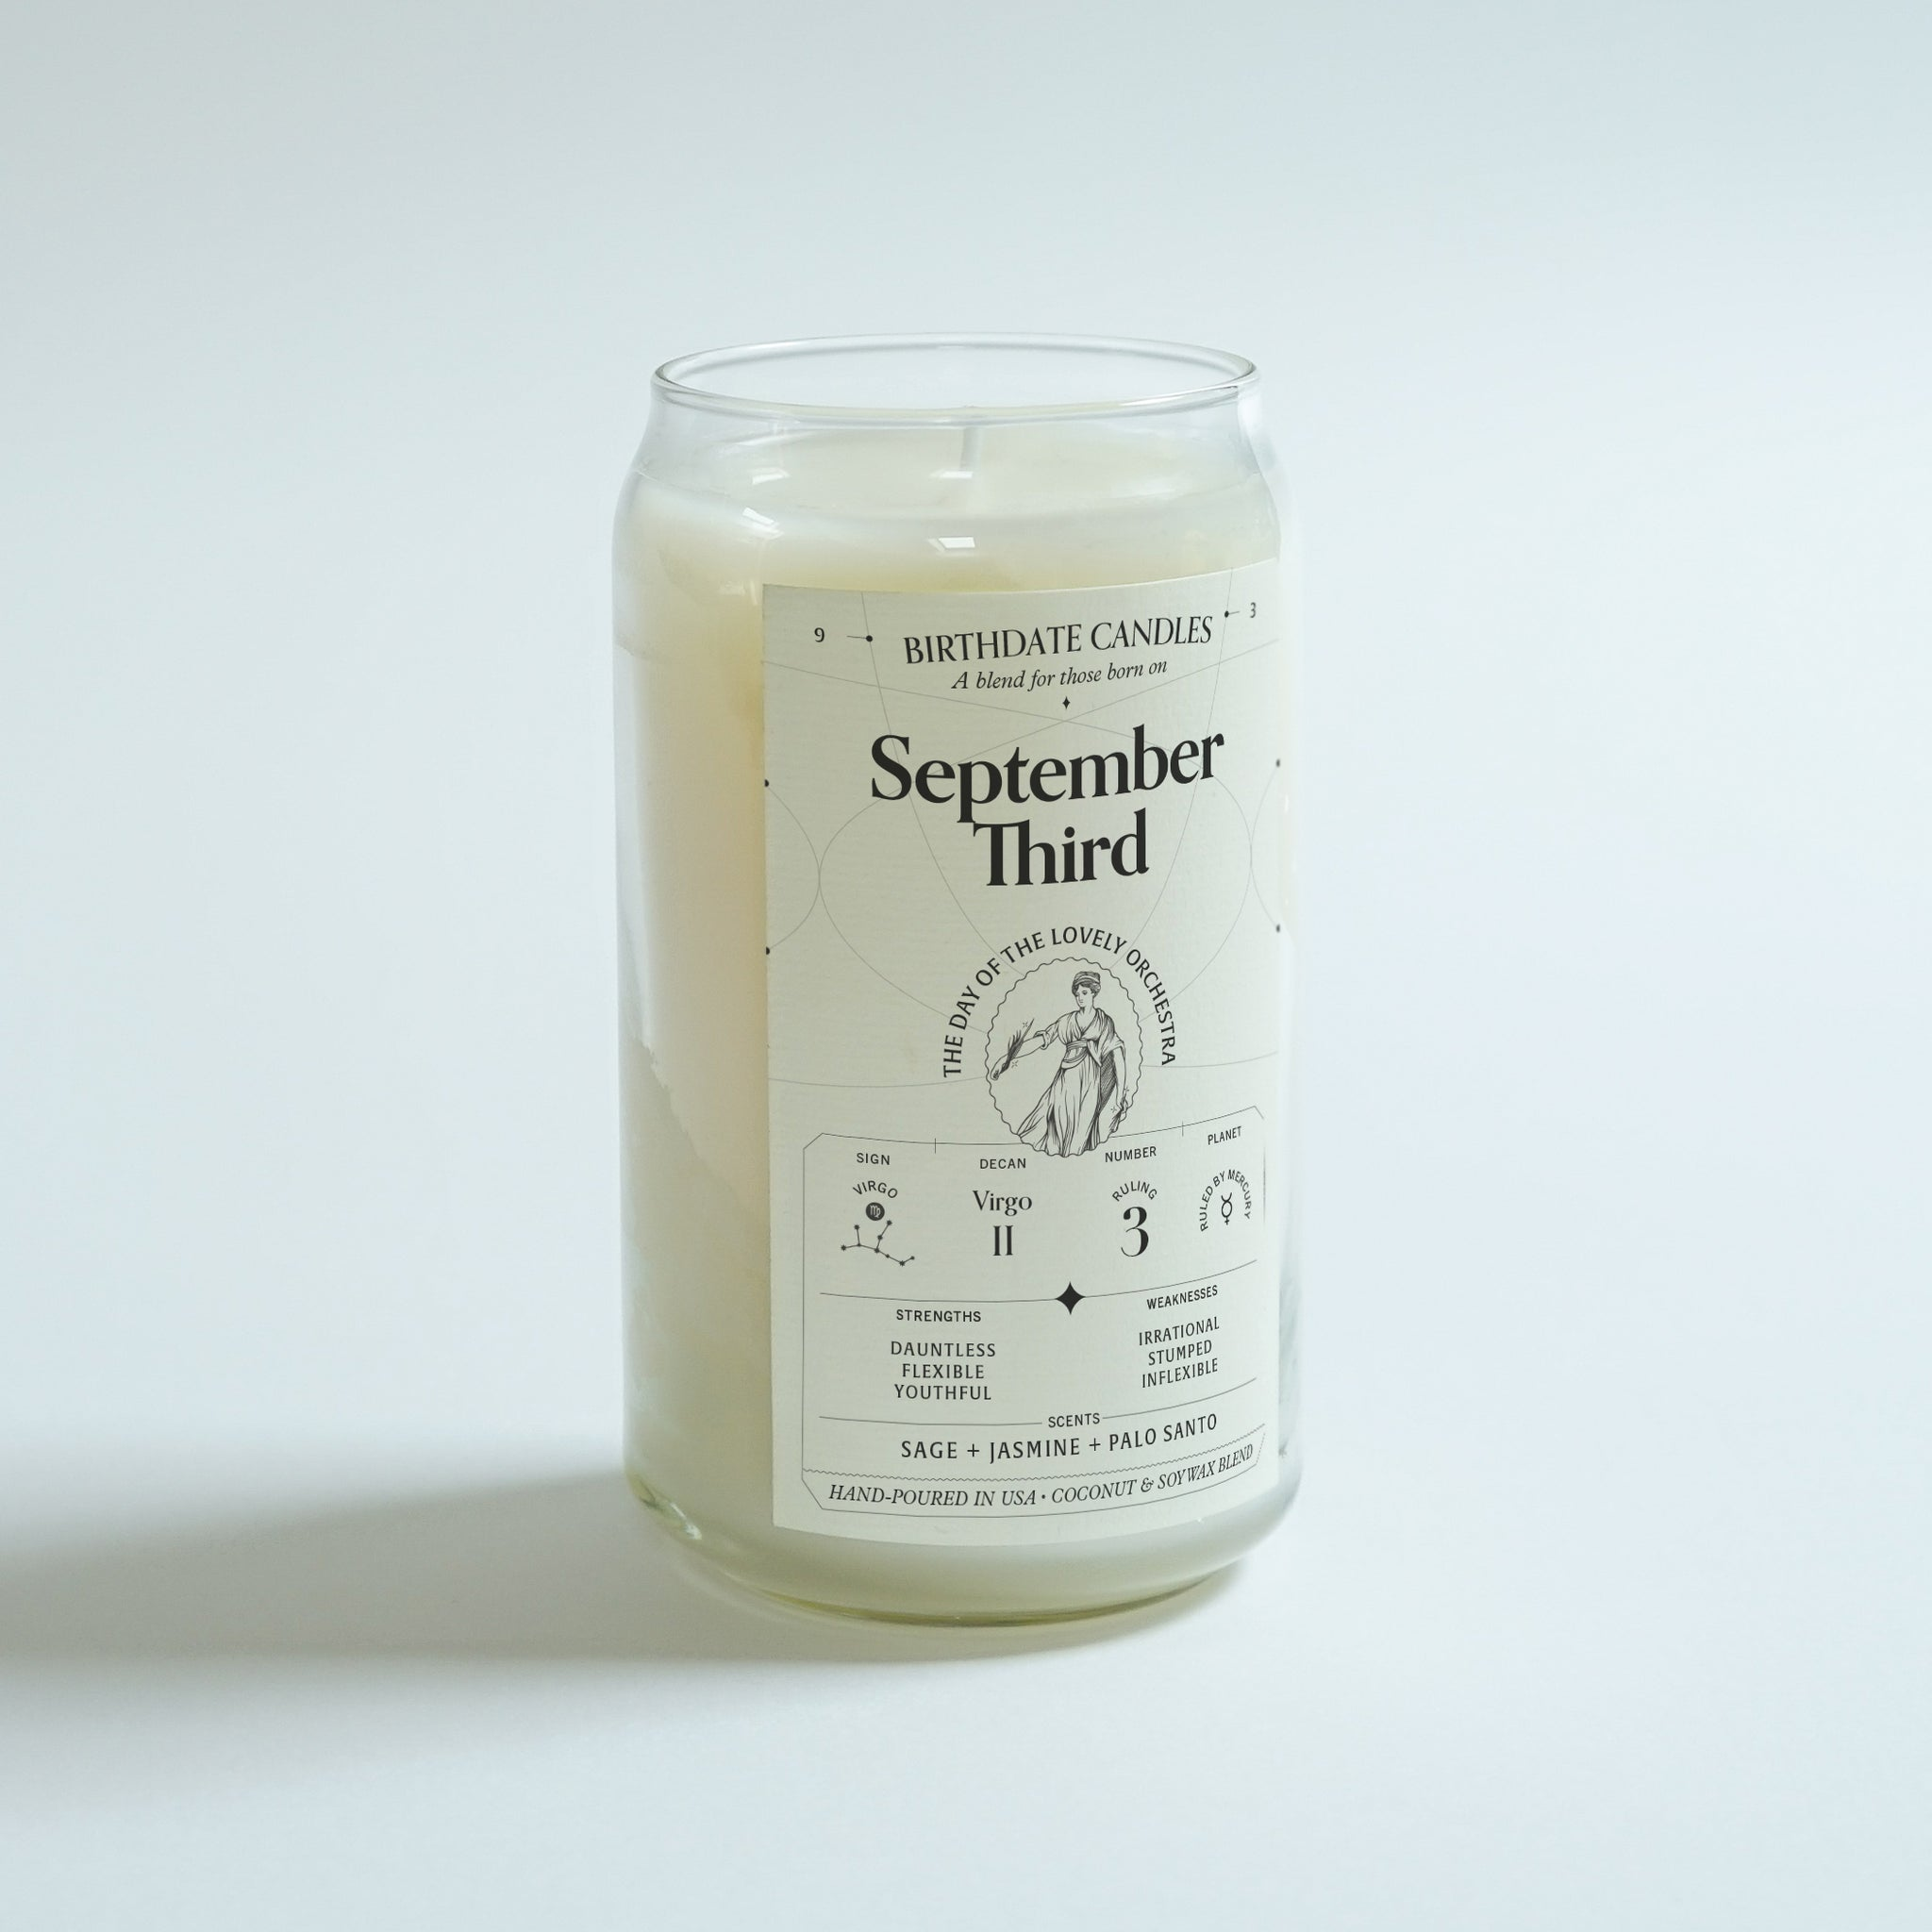 The September Third Candle